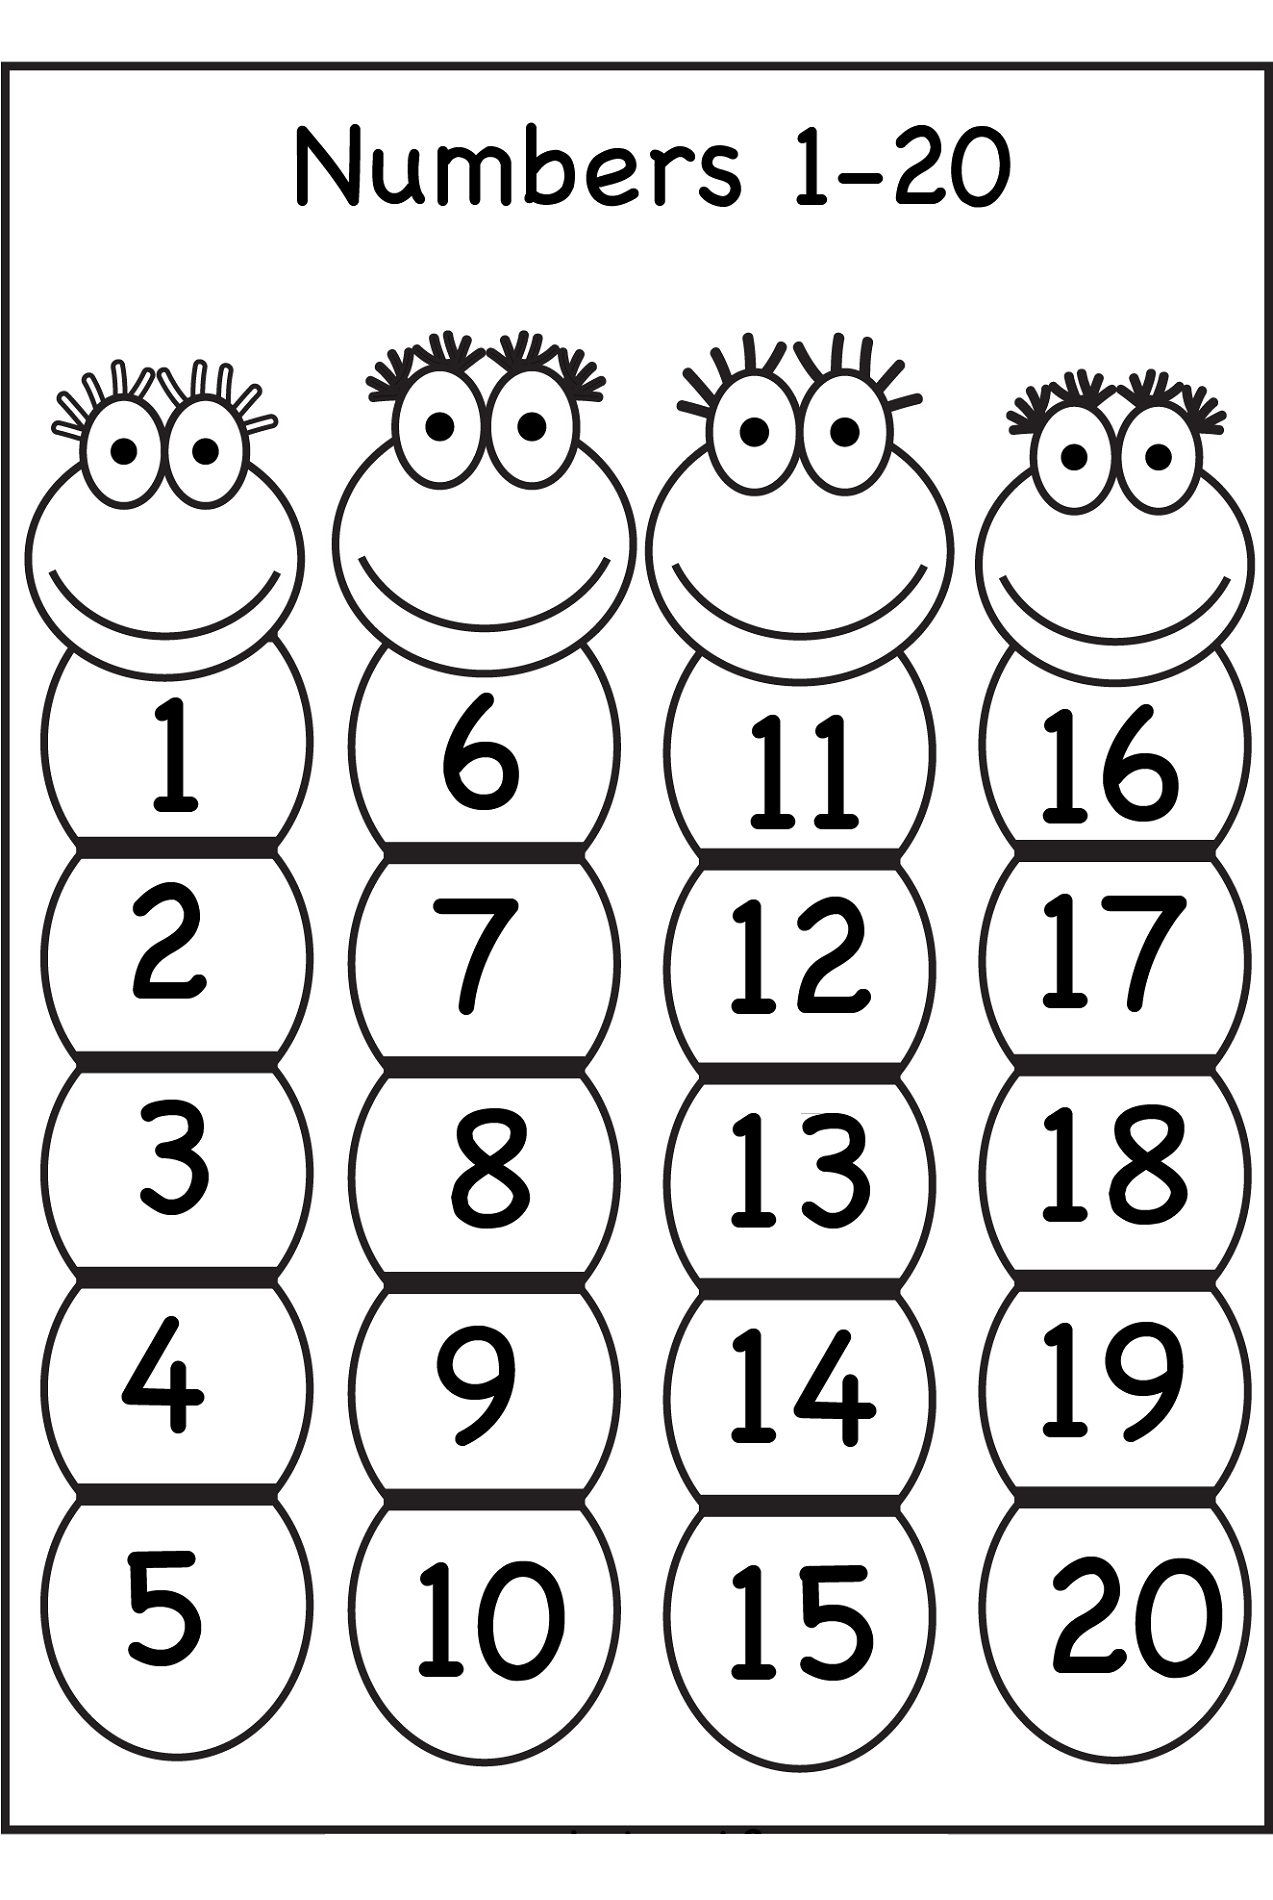 Worksheet Printable Numbers 1-20 printable number 20 worksheets activity shelter worksheet for kindergarten